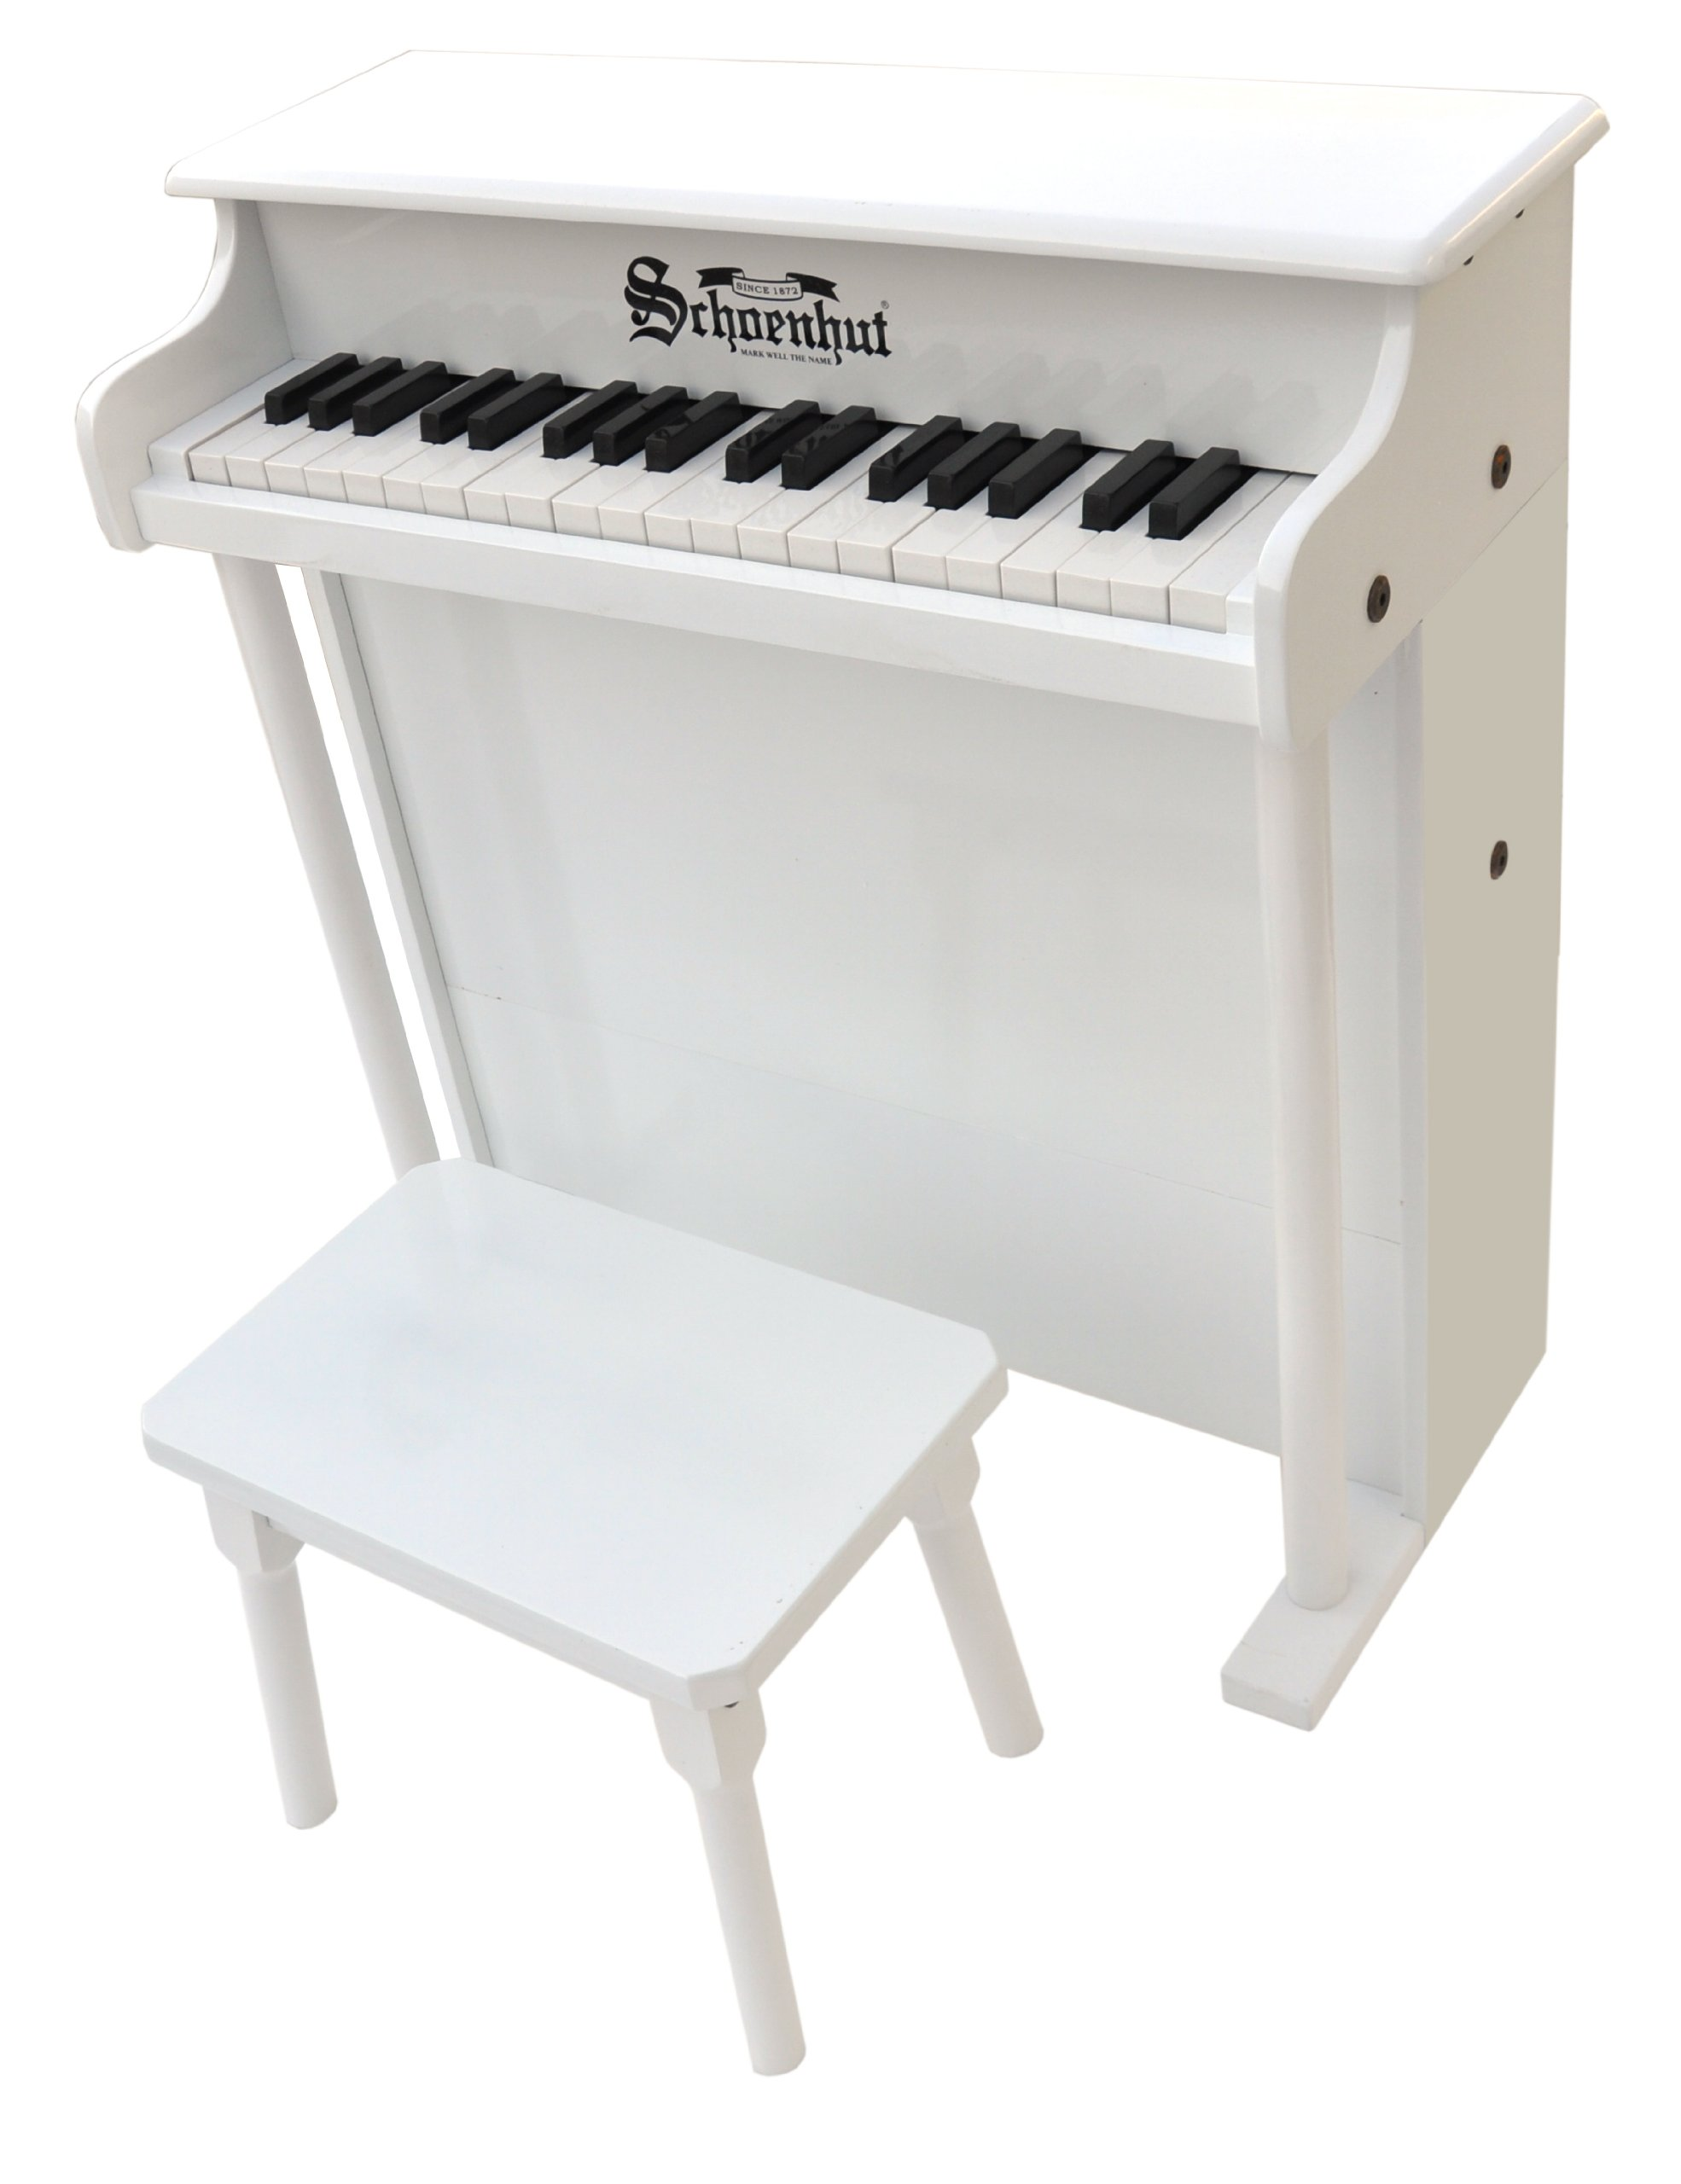 Schoenhut Learn-to-Play Upright Piano with 37-Keys and Patented Play-by-Color Tri-Play Learning System